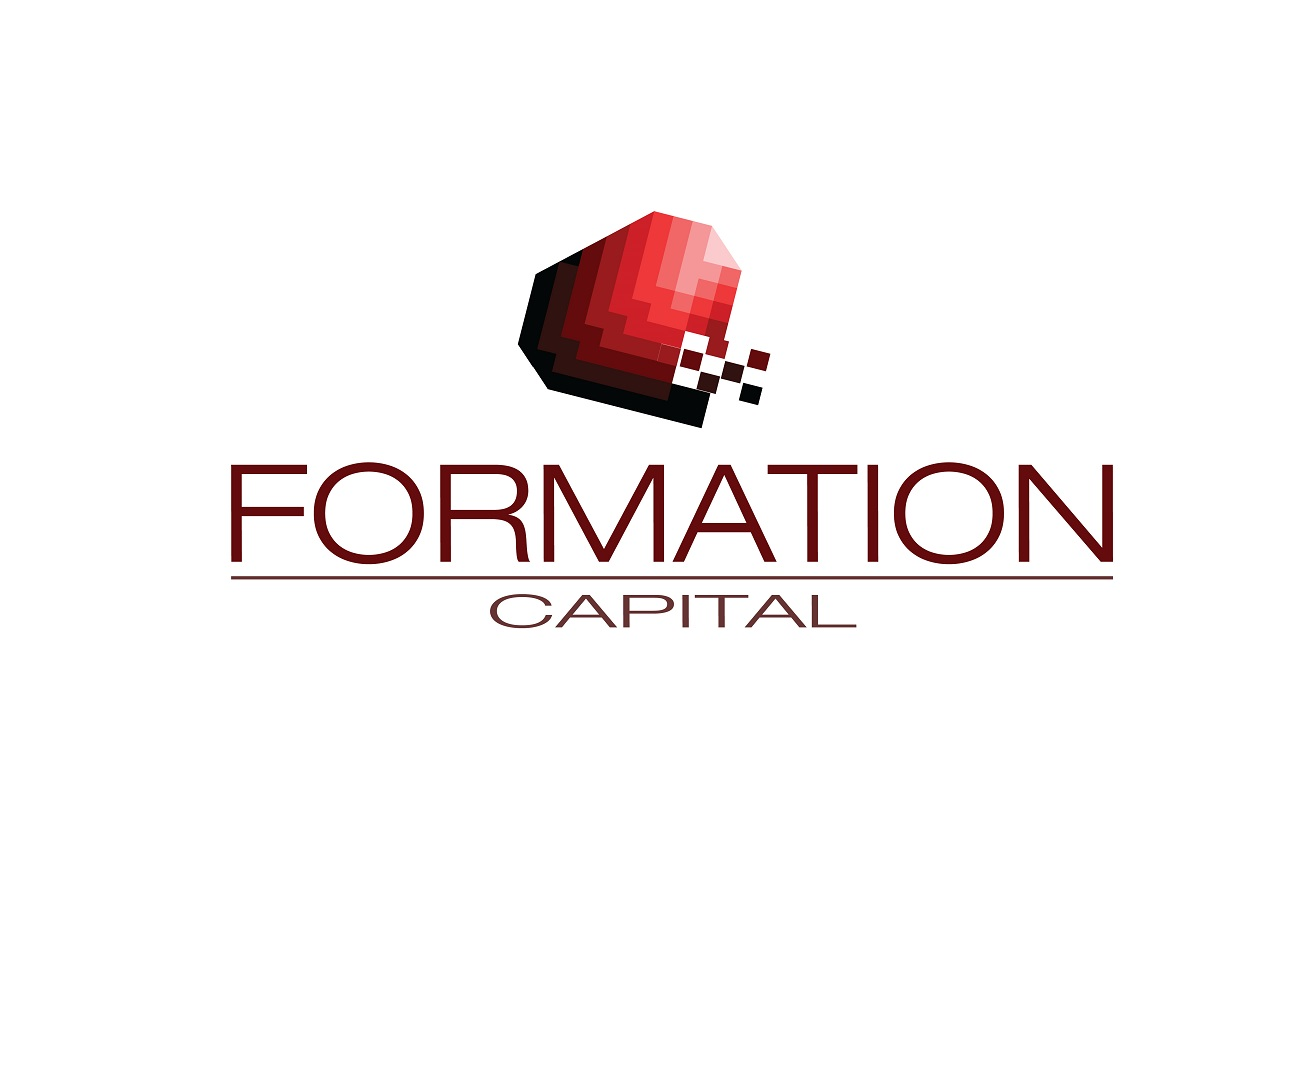 Logo Design by jhunzkie24 - Entry No. 155 in the Logo Design Contest Inspiring Logo Design for Formation Capital.